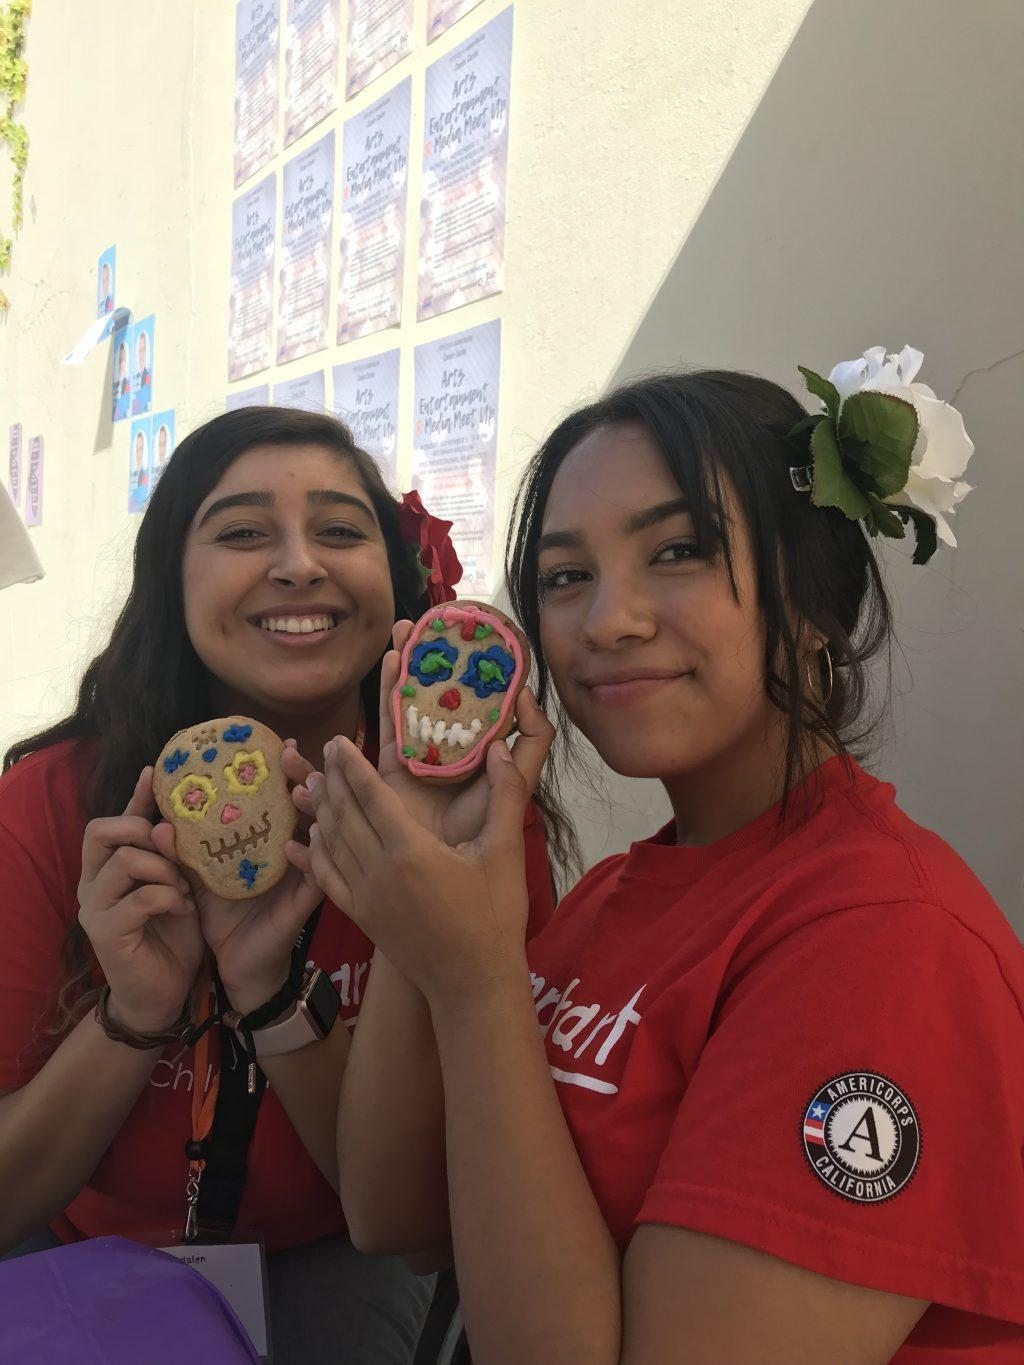 Celeste Benitez (right) decorates a colorful Día de los Muertos cookie with her friend and fellow LSA member Madalen Carrera on campus in November 2018. The pair tabled by the Rock on the Malibu Campus to promote the LSA's Noche de Altares (Night of the Alters) event. Photo courtesy of Celeste Benitez